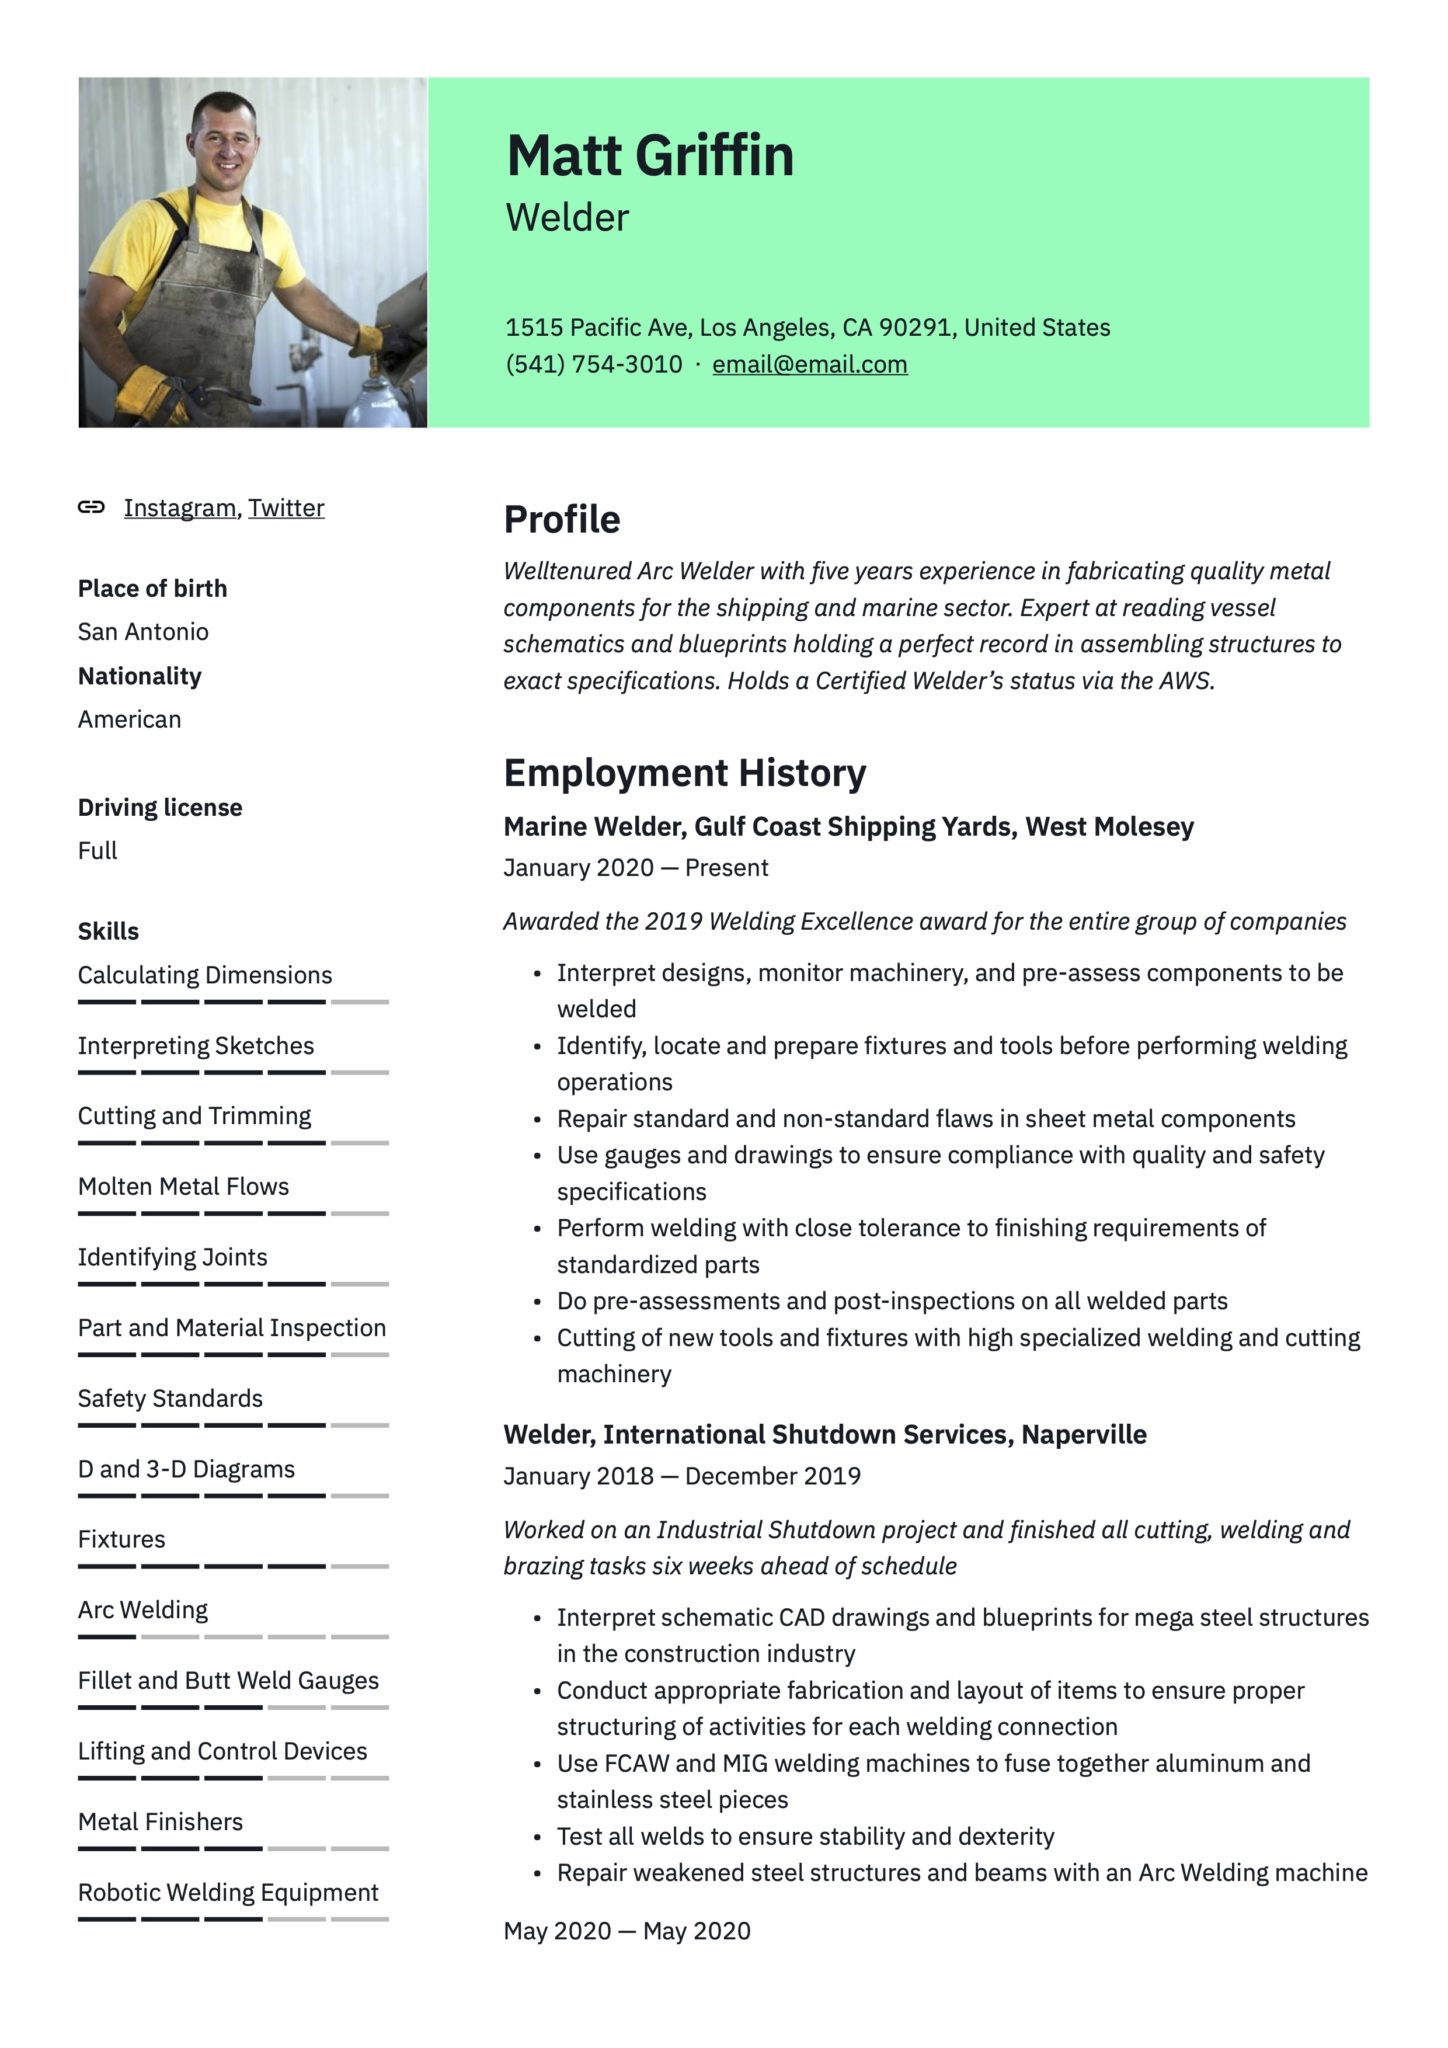 free welder resume examples guide pdf sample for position scaled general manager office Resume Sample Resume For Welder Position